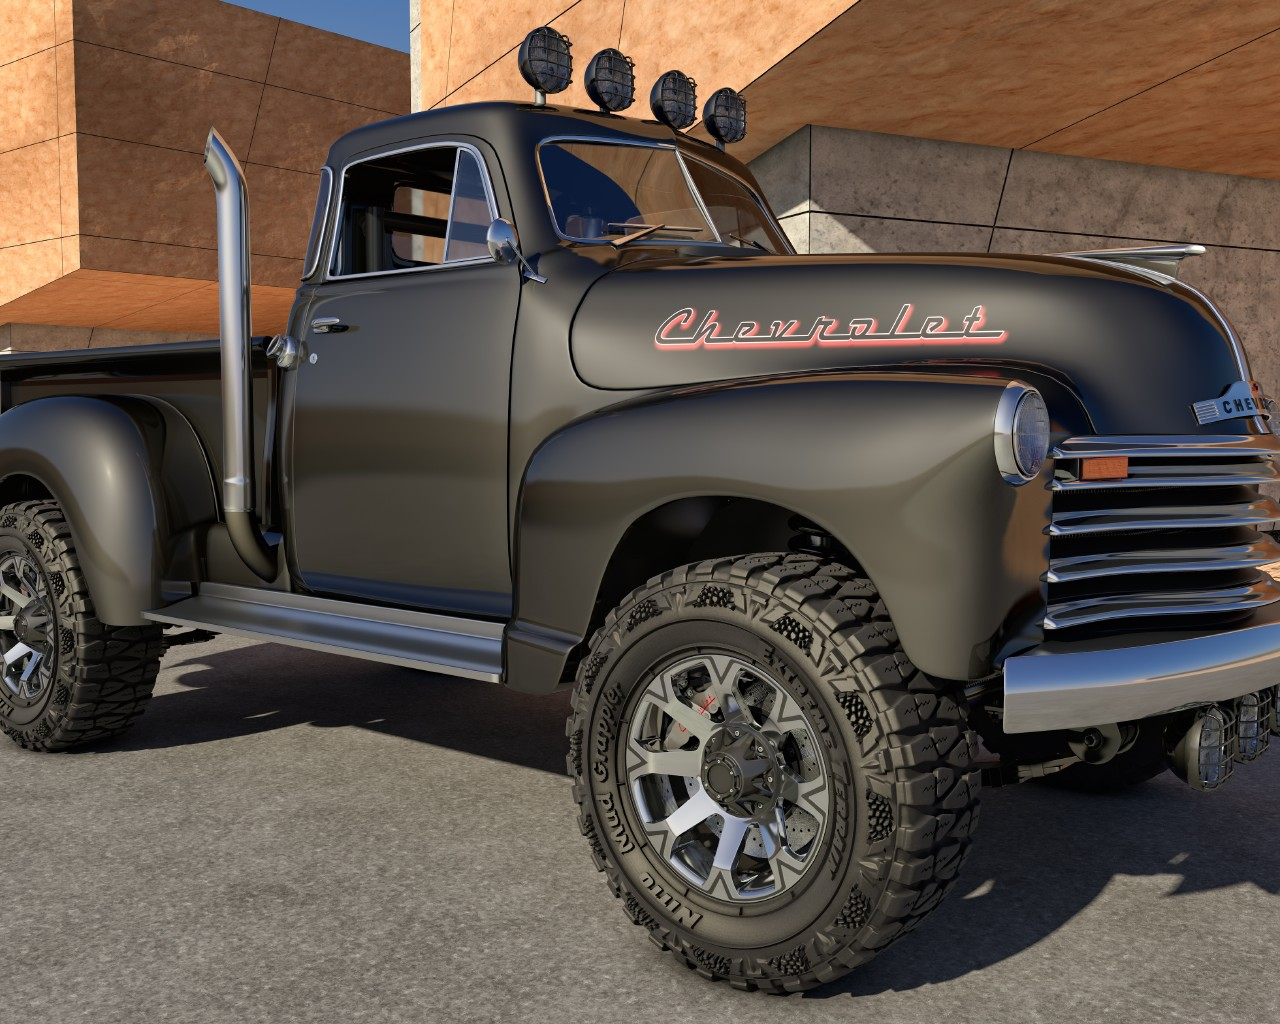 Wallpaper 1951 Chevy 4X4 Truck 4X4 Chevy Pickup Cars Machines 1280x1024